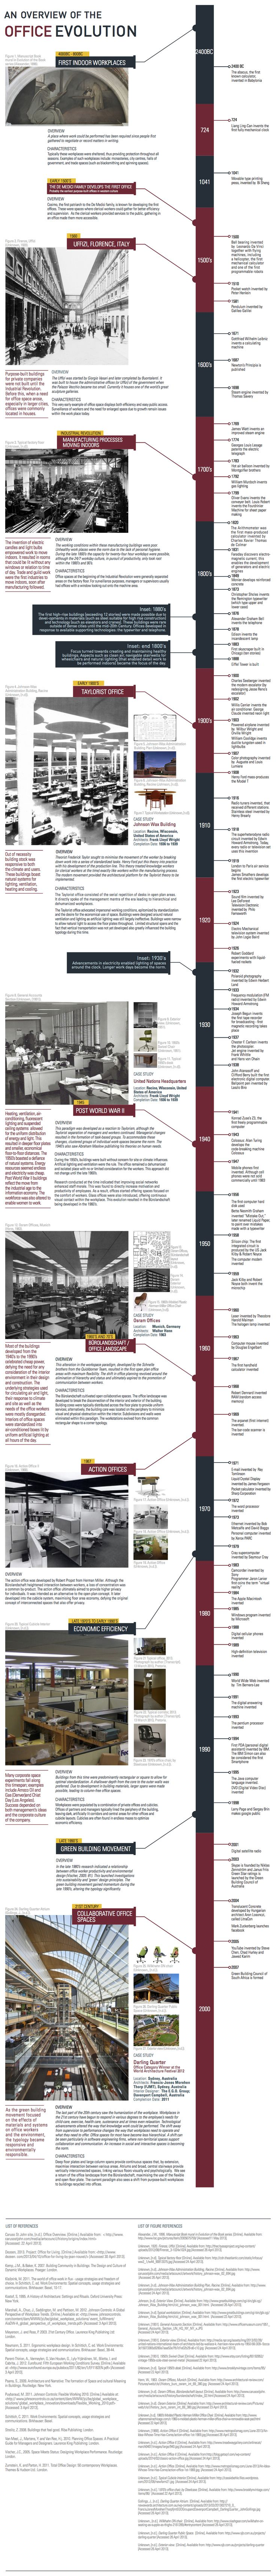 53a2082dc07a8079c500020c_infographic-the-evolution-of-the-office_vertical_timeline_2014-06.jpg (1100×10270)